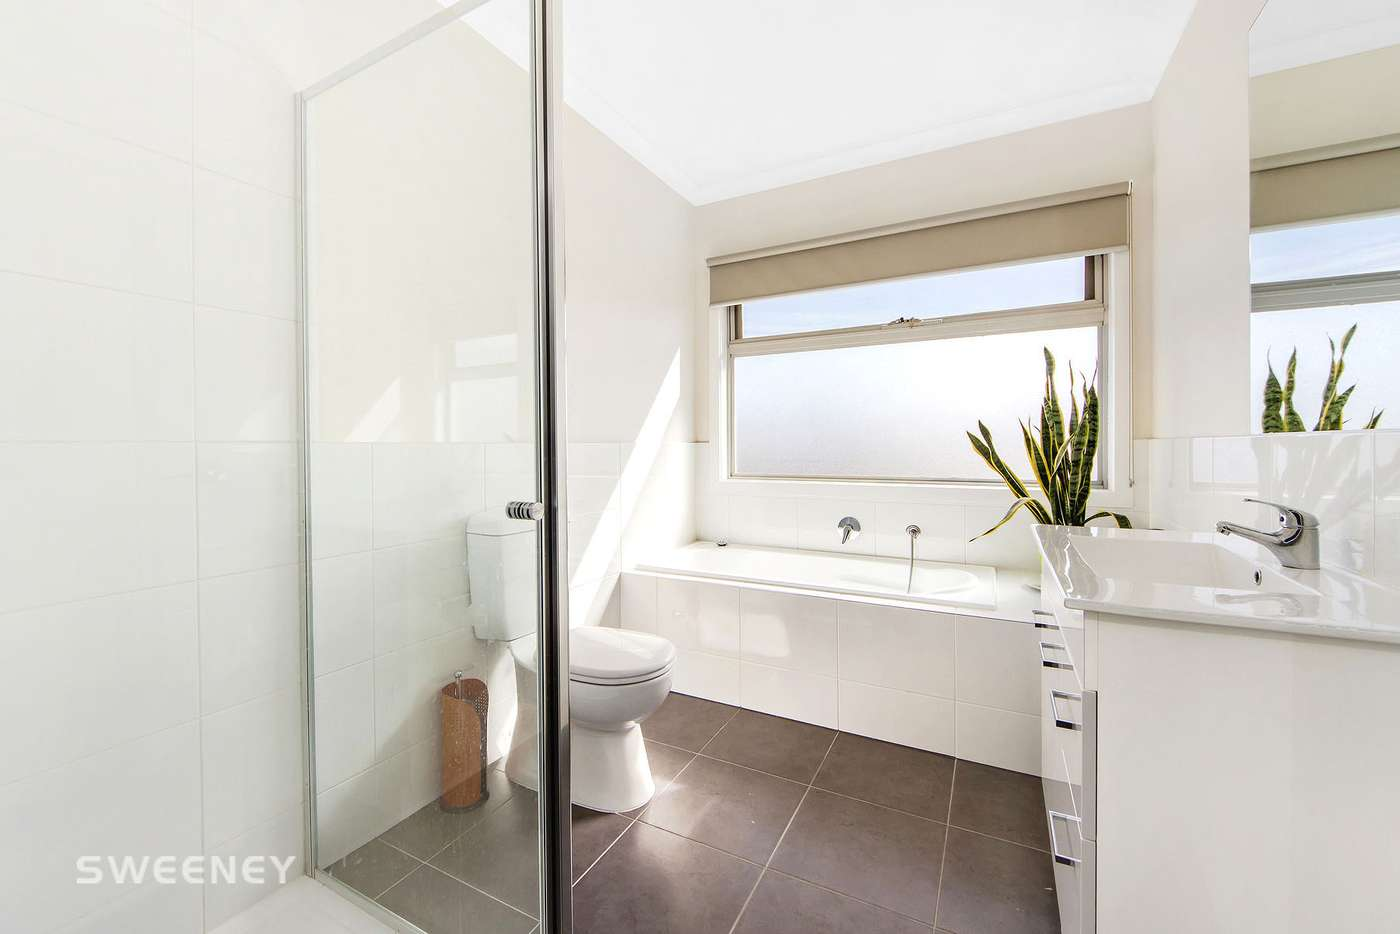 Fifth view of Homely townhouse listing, 1/39 Bardsley Street, Sunshine West VIC 3020